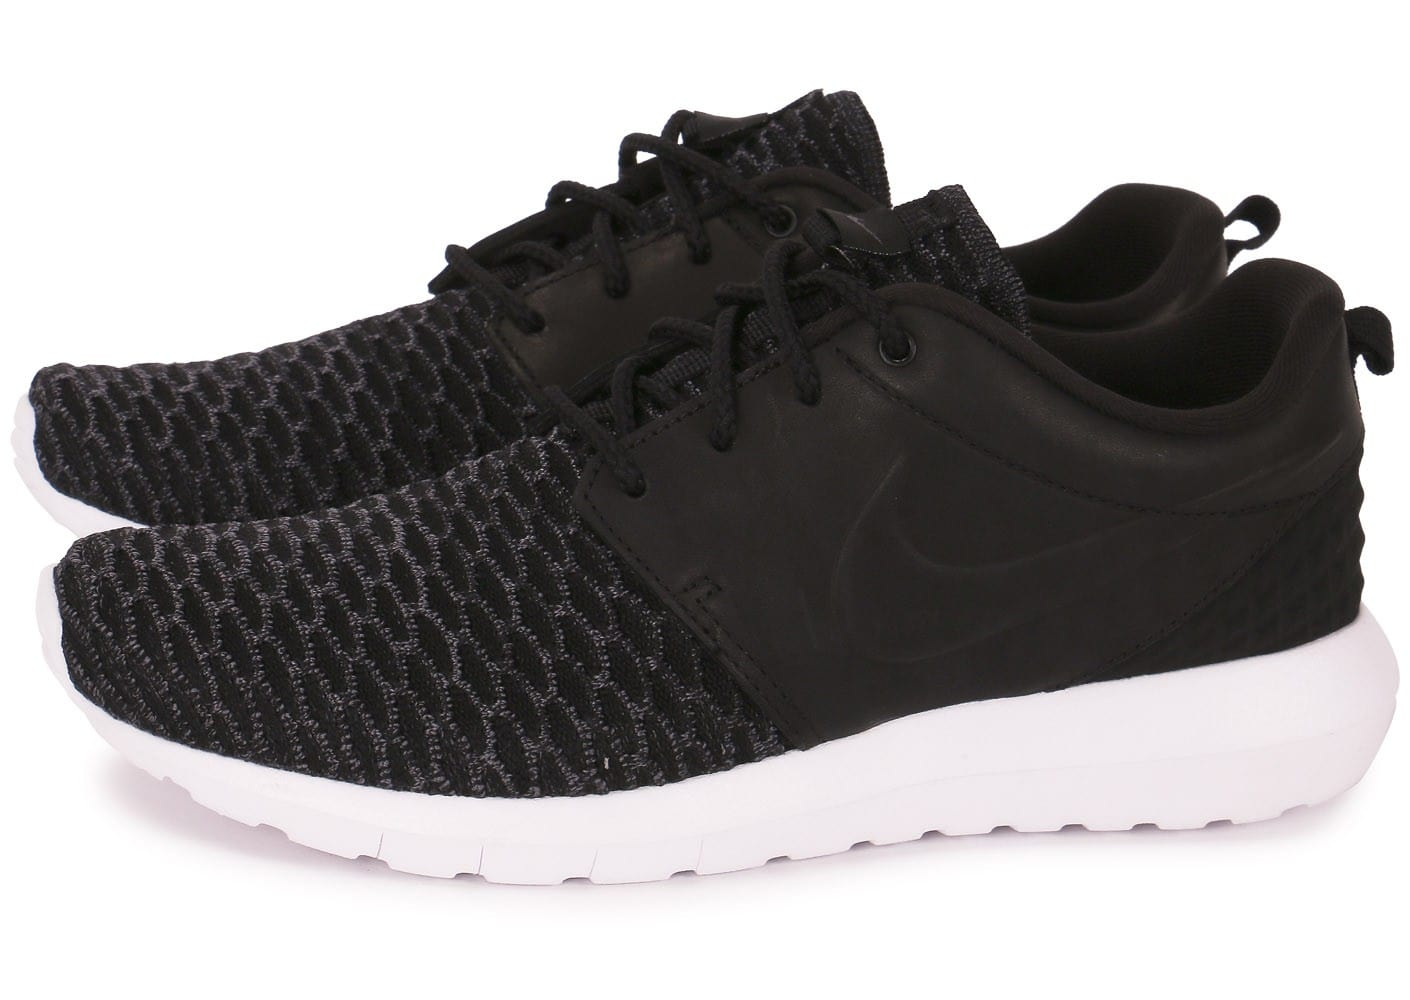 Nike Roshe Nm Flyknit Premium Noire Chaussures Baskets homme